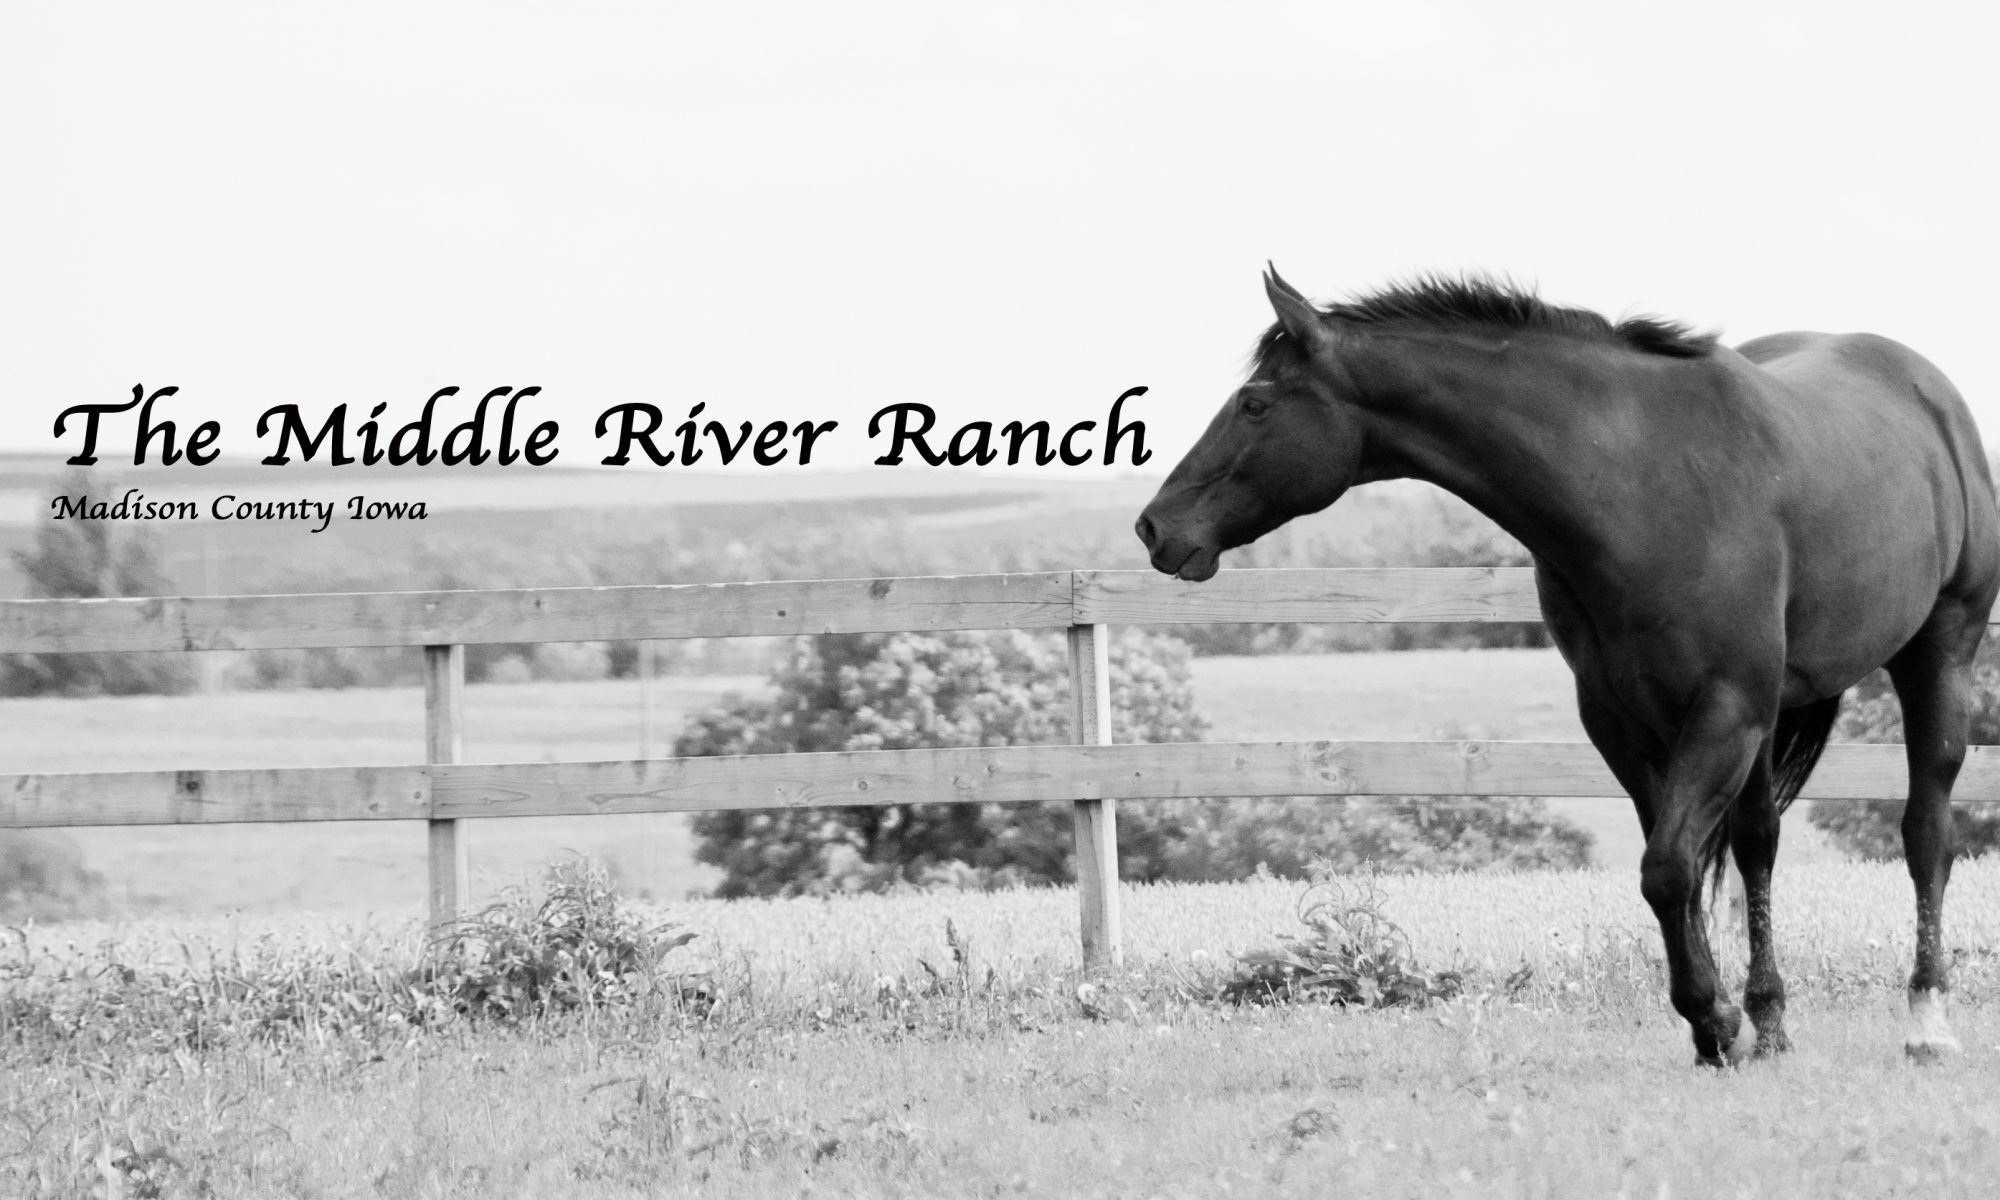 The Middle River Ranch